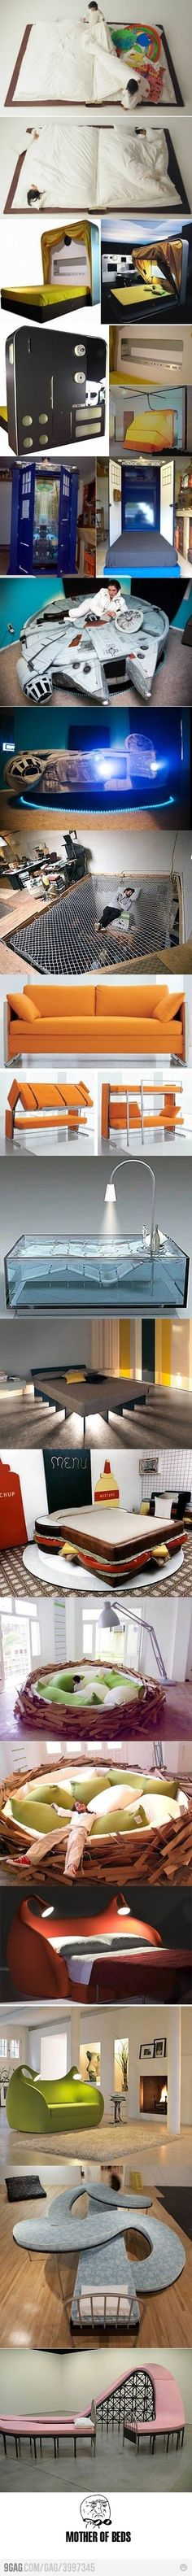 These are the coolest beds EVER!!!!!